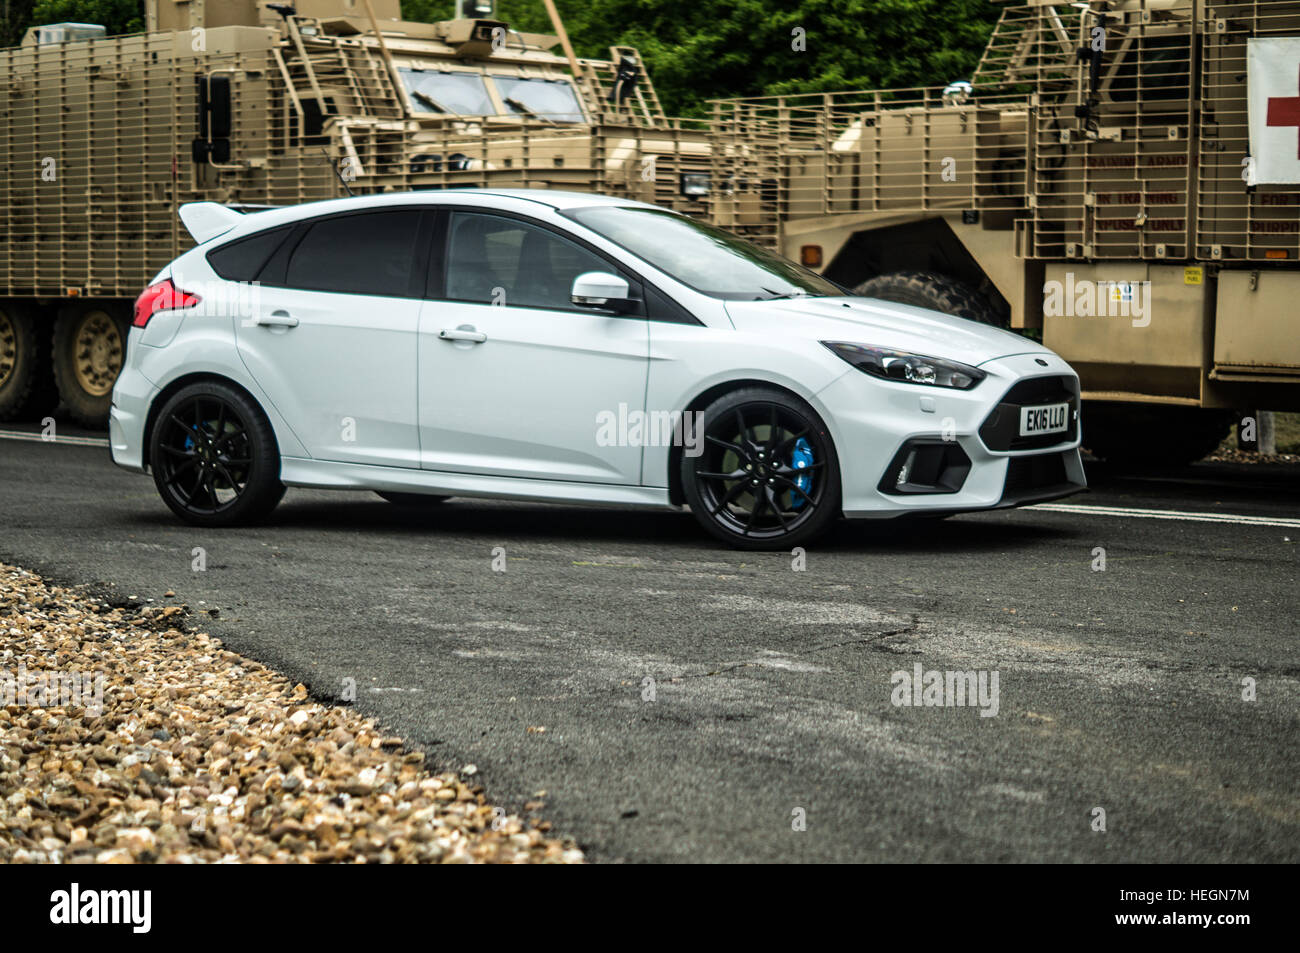 White Mark  Mkiv Ford Focus Rs Parked In Front Of Army Military Equipment